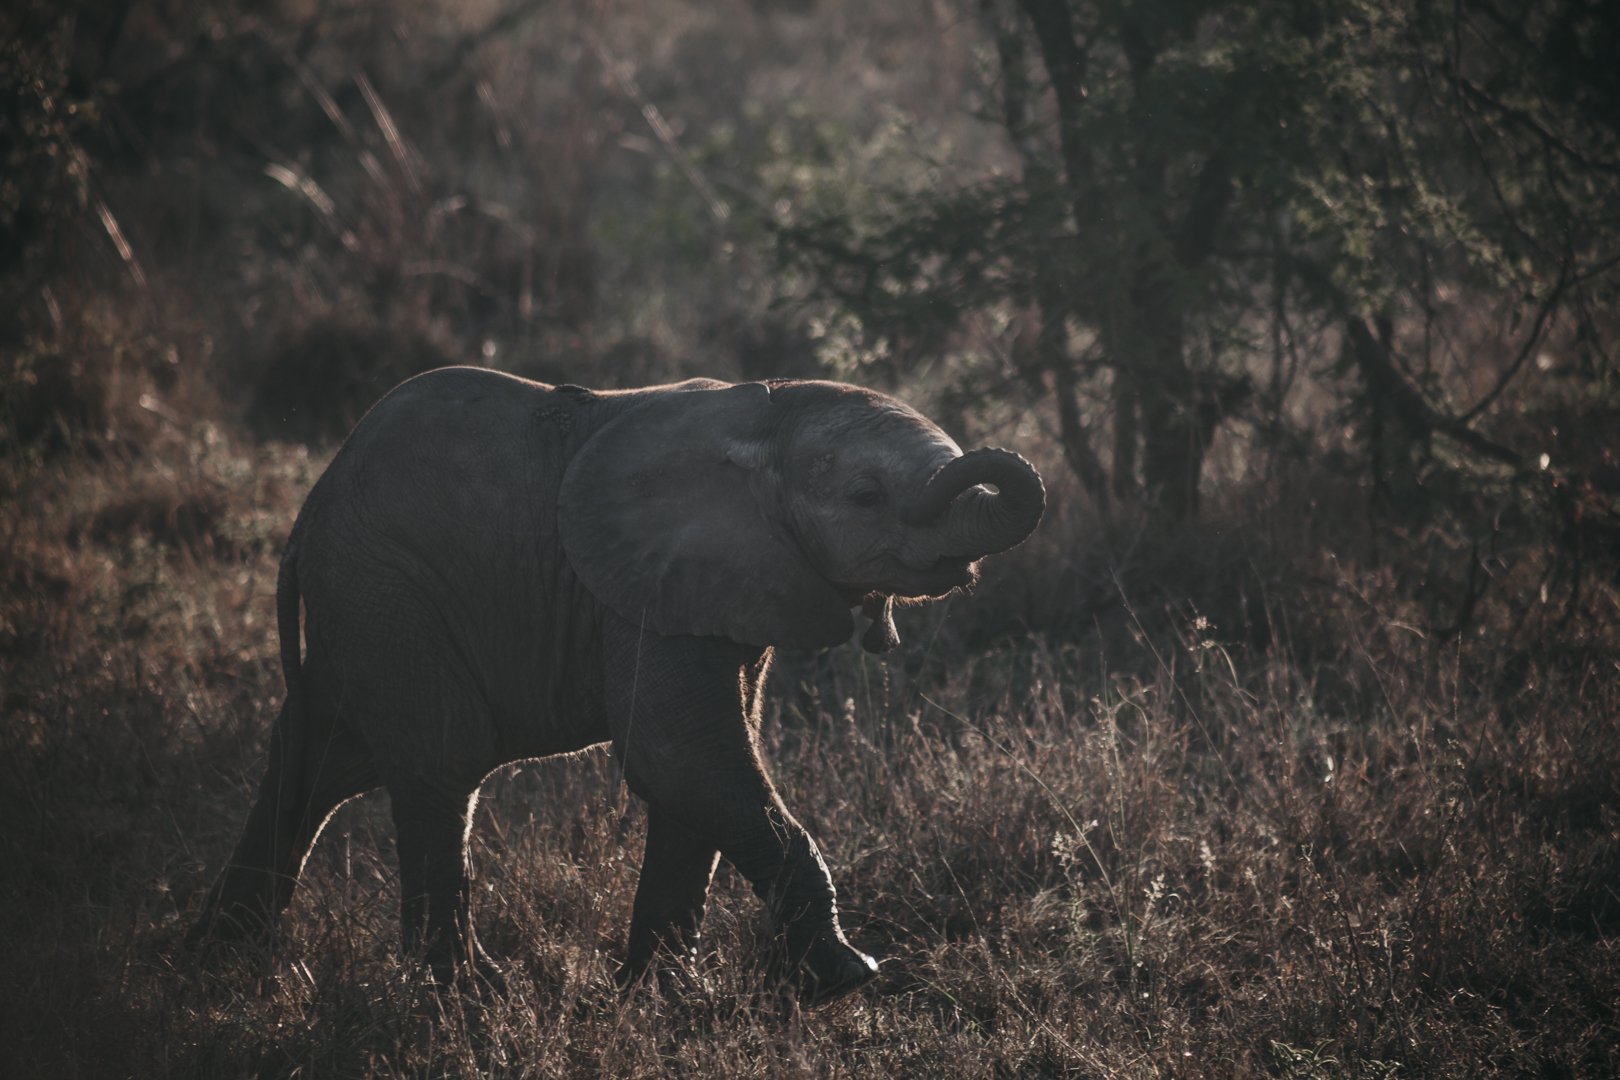 Eelephant | South Africa